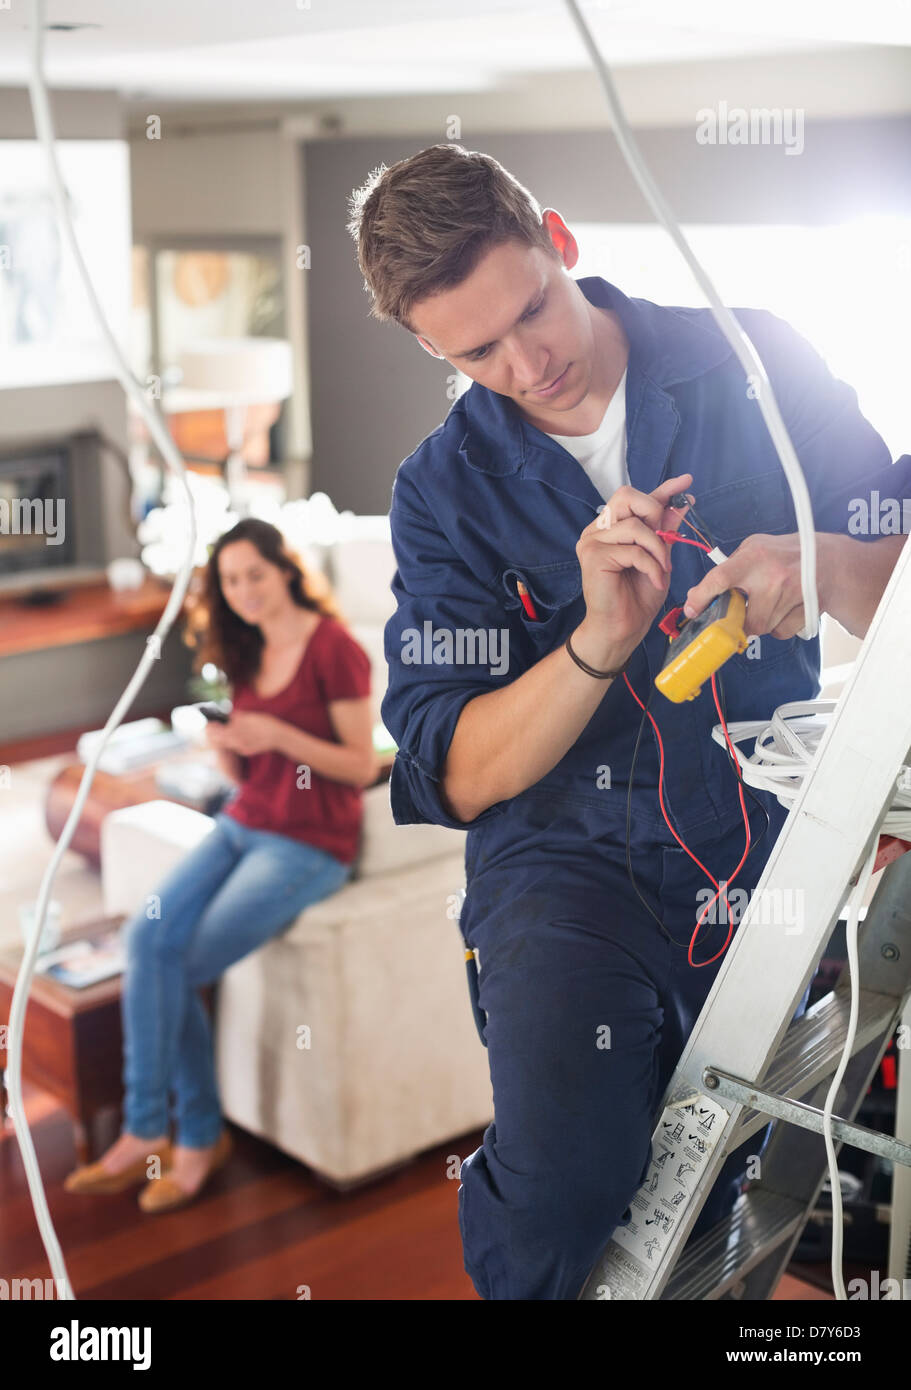 Electrician working in home Stock Photo: 56531471 - Alamy